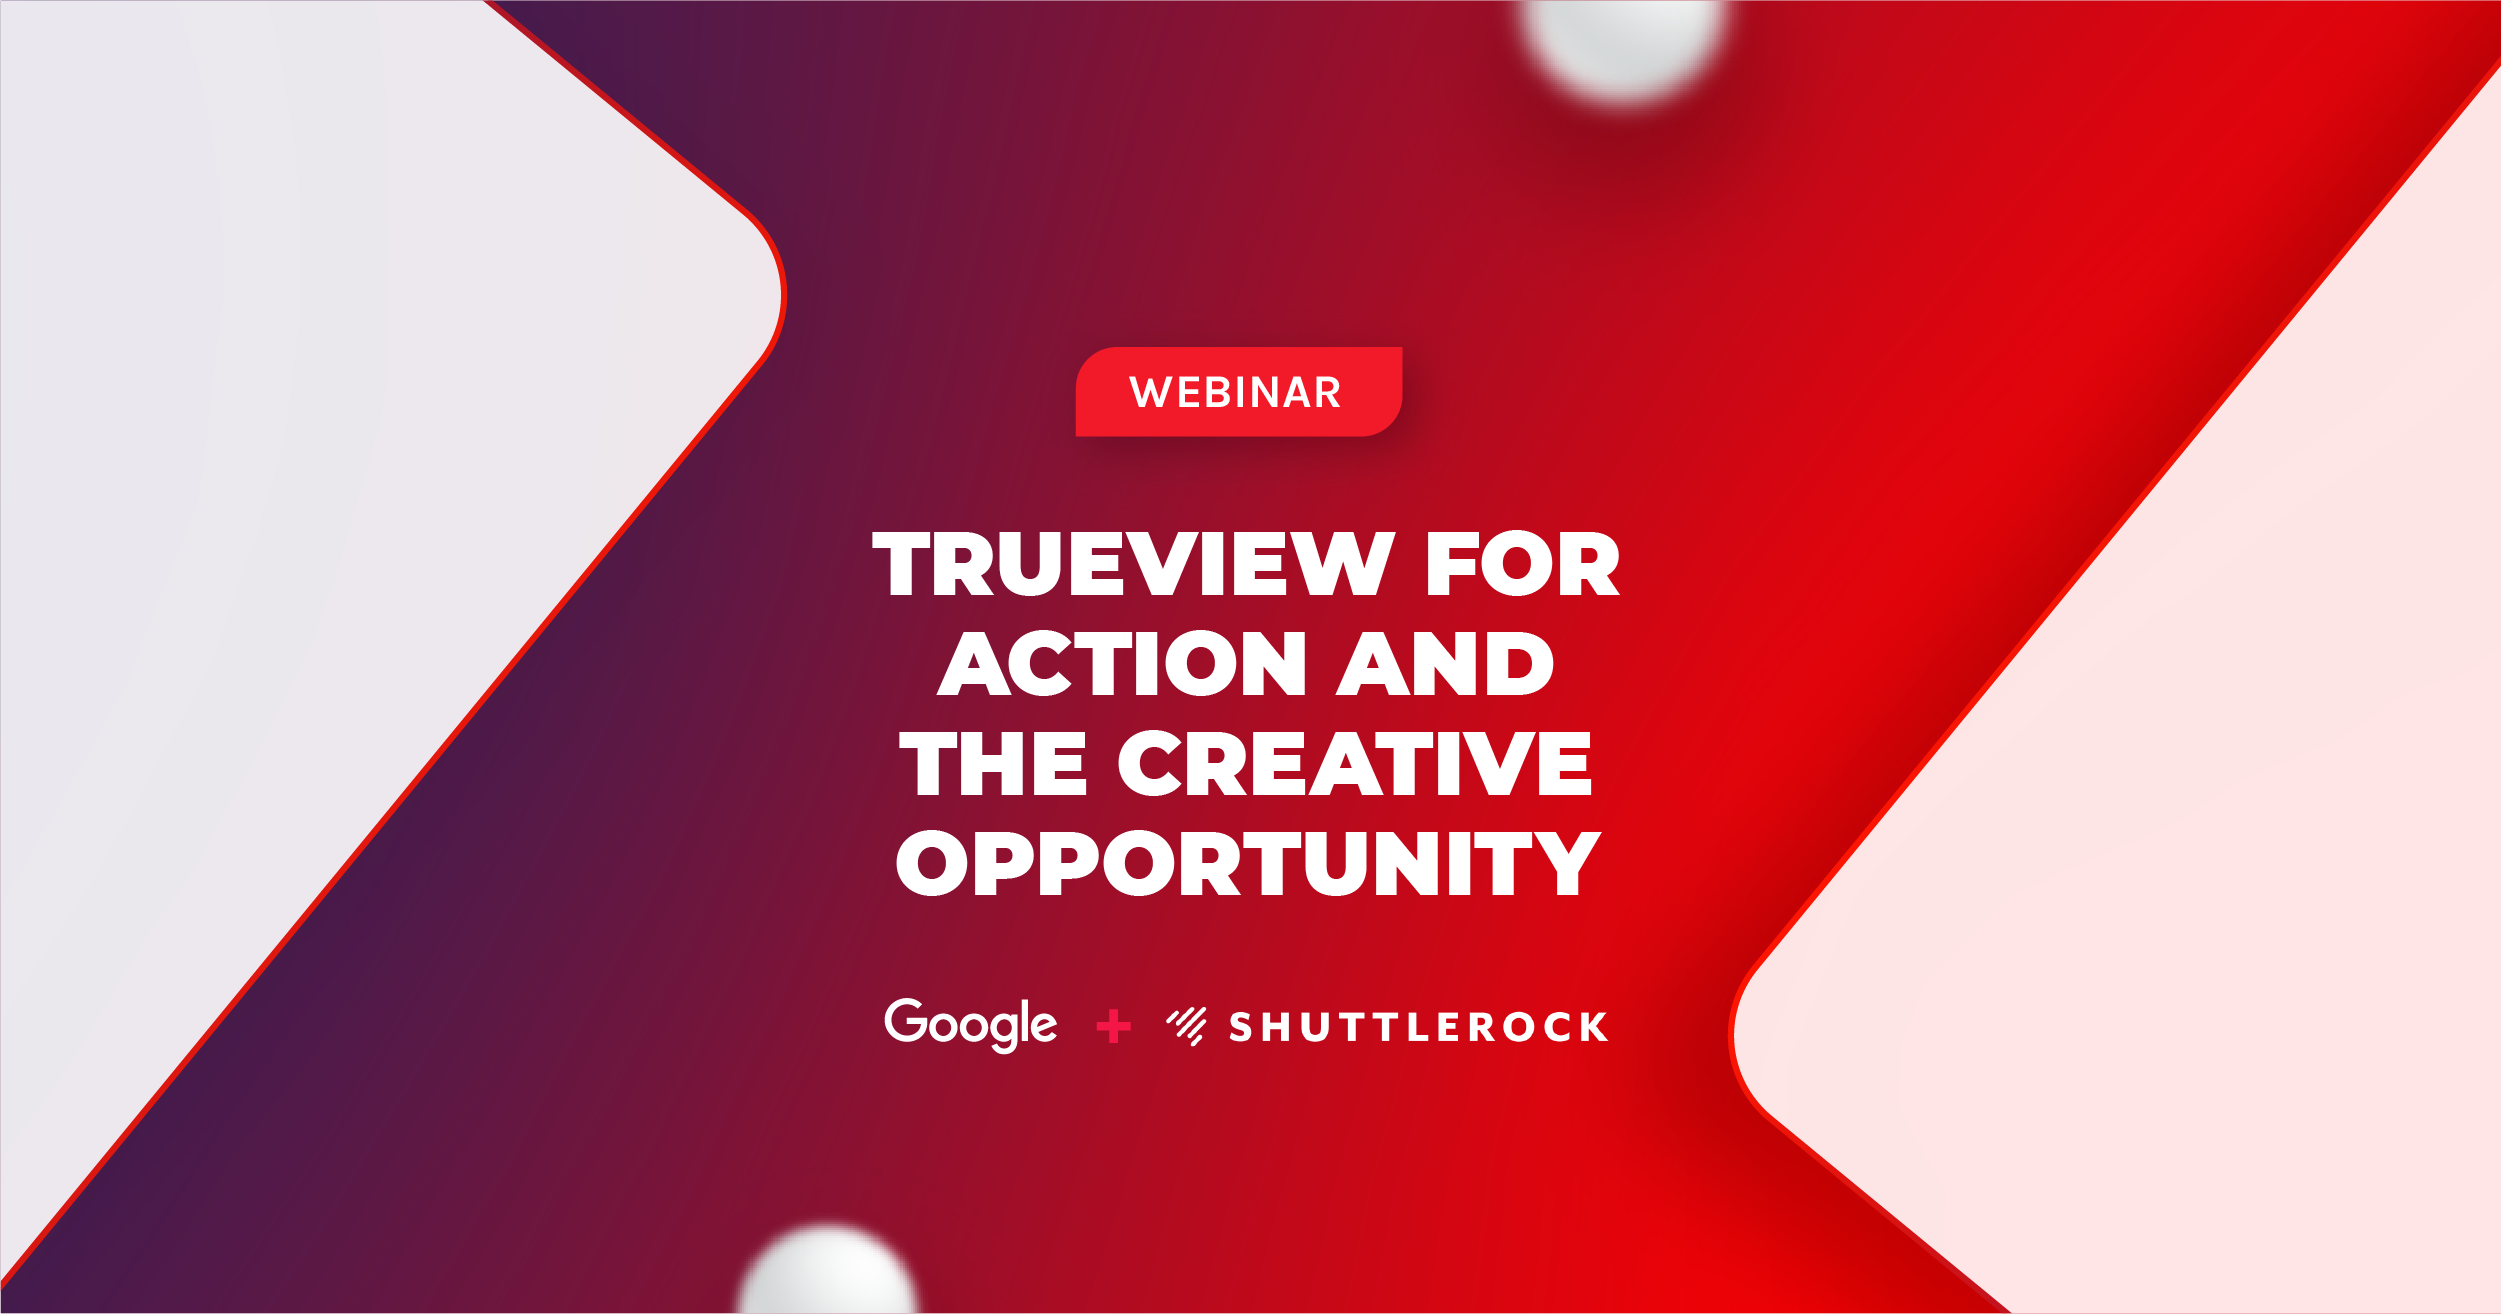 TrueView For Action And The Creative Opportunity